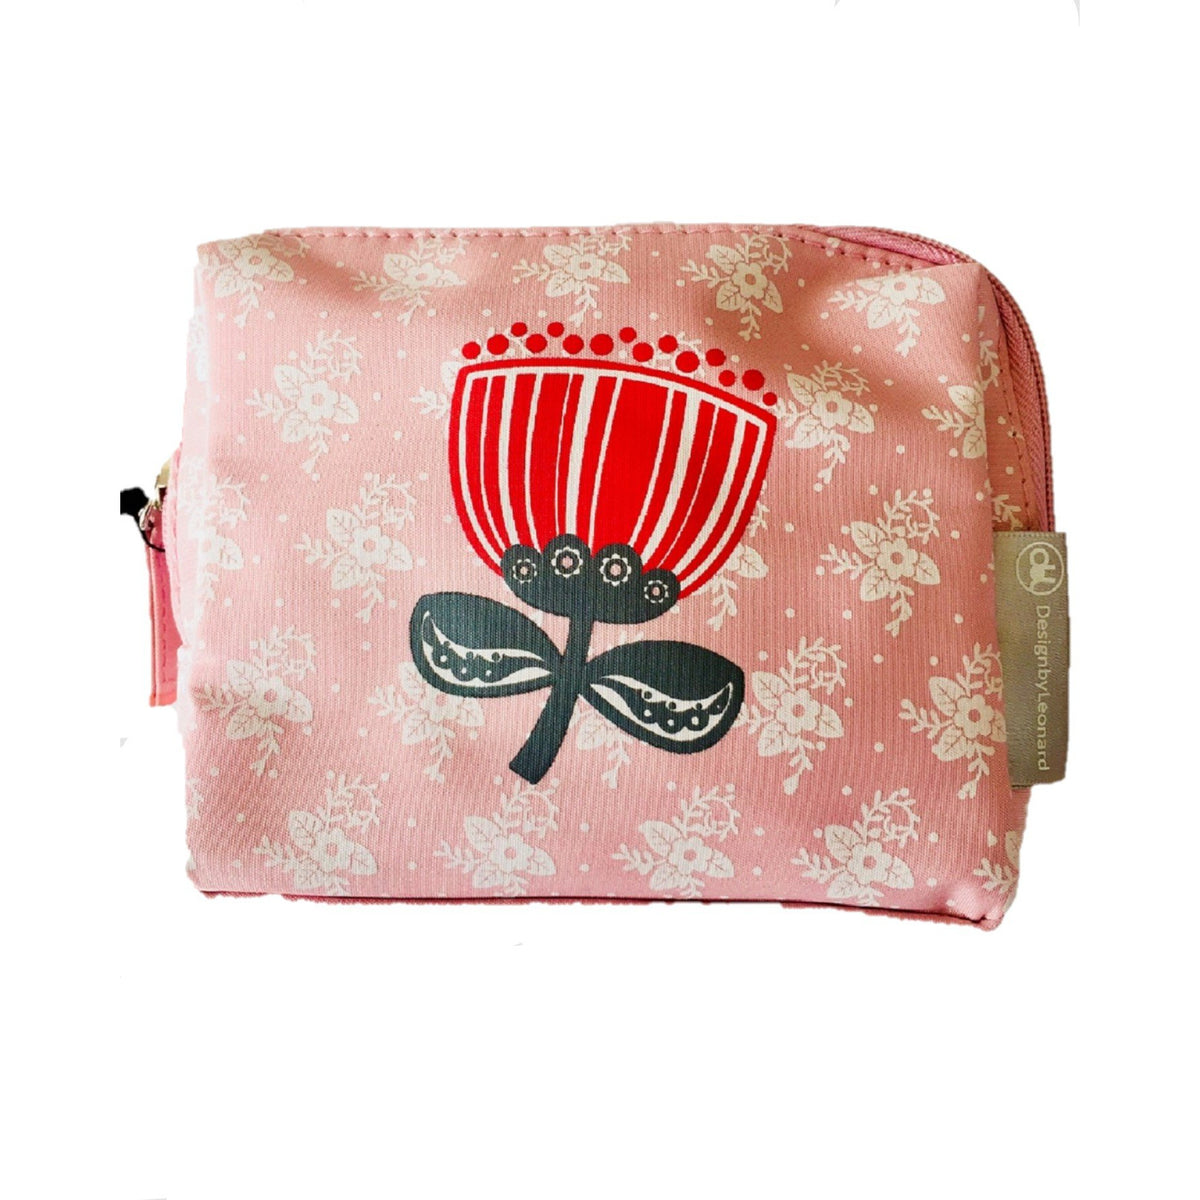 Cosmetic Purse - perfectly sized to carry anti-nausea supplies!